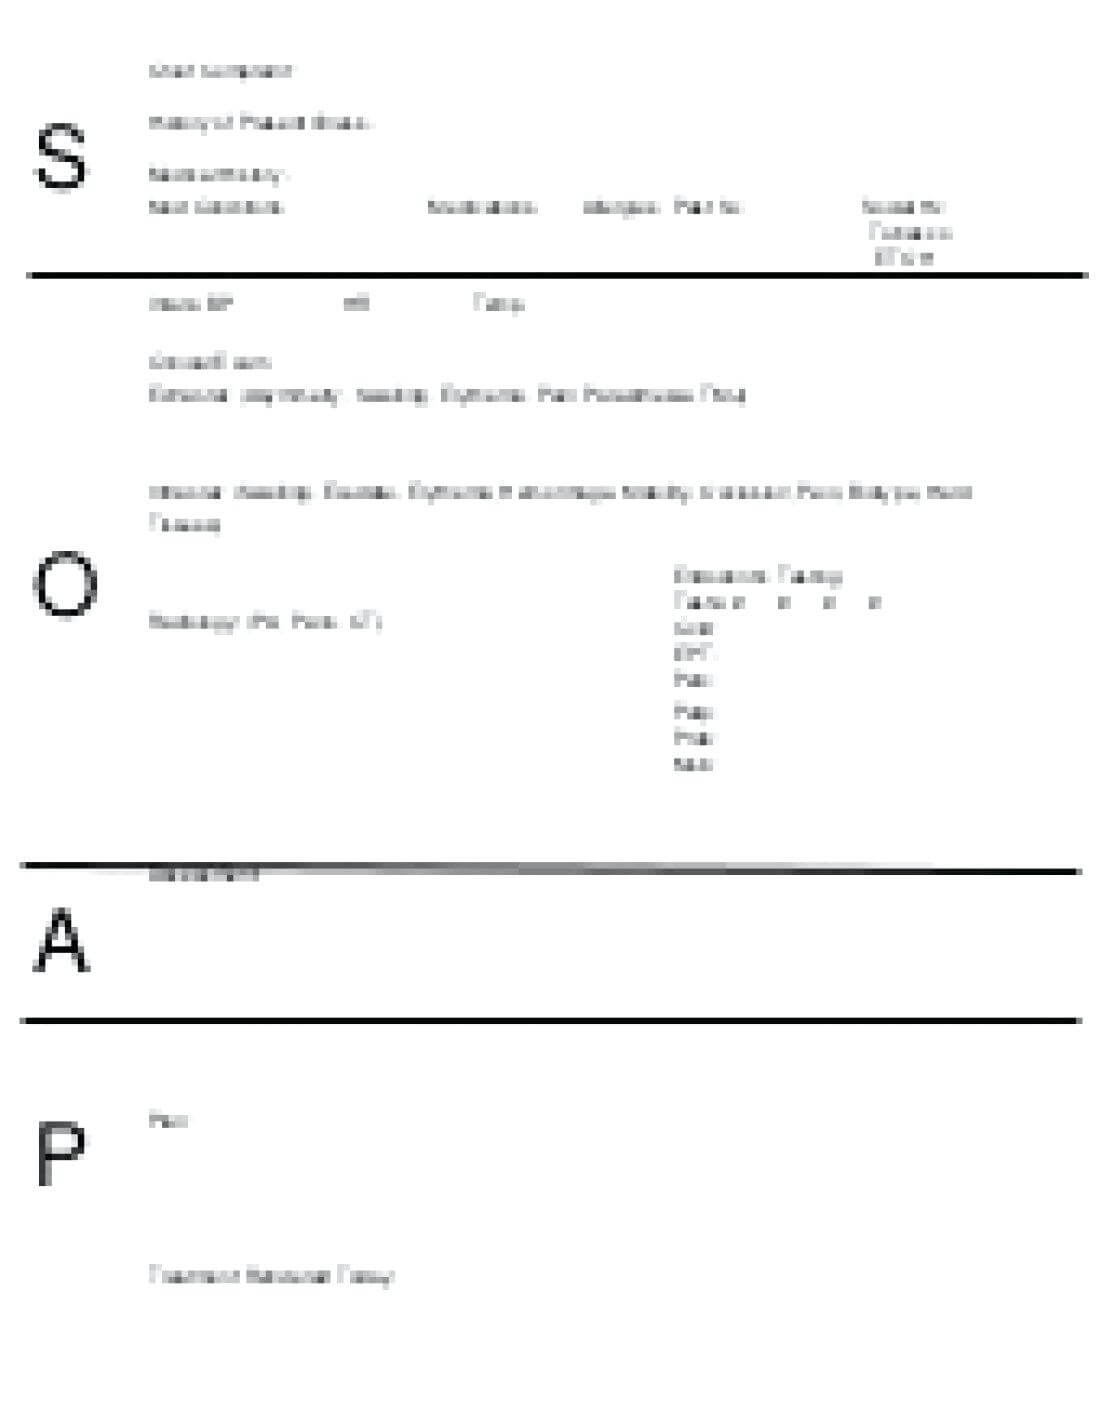 018 Blank Soap Note Template Perfect Ems Format Staggering Inside Soap Note Template Word